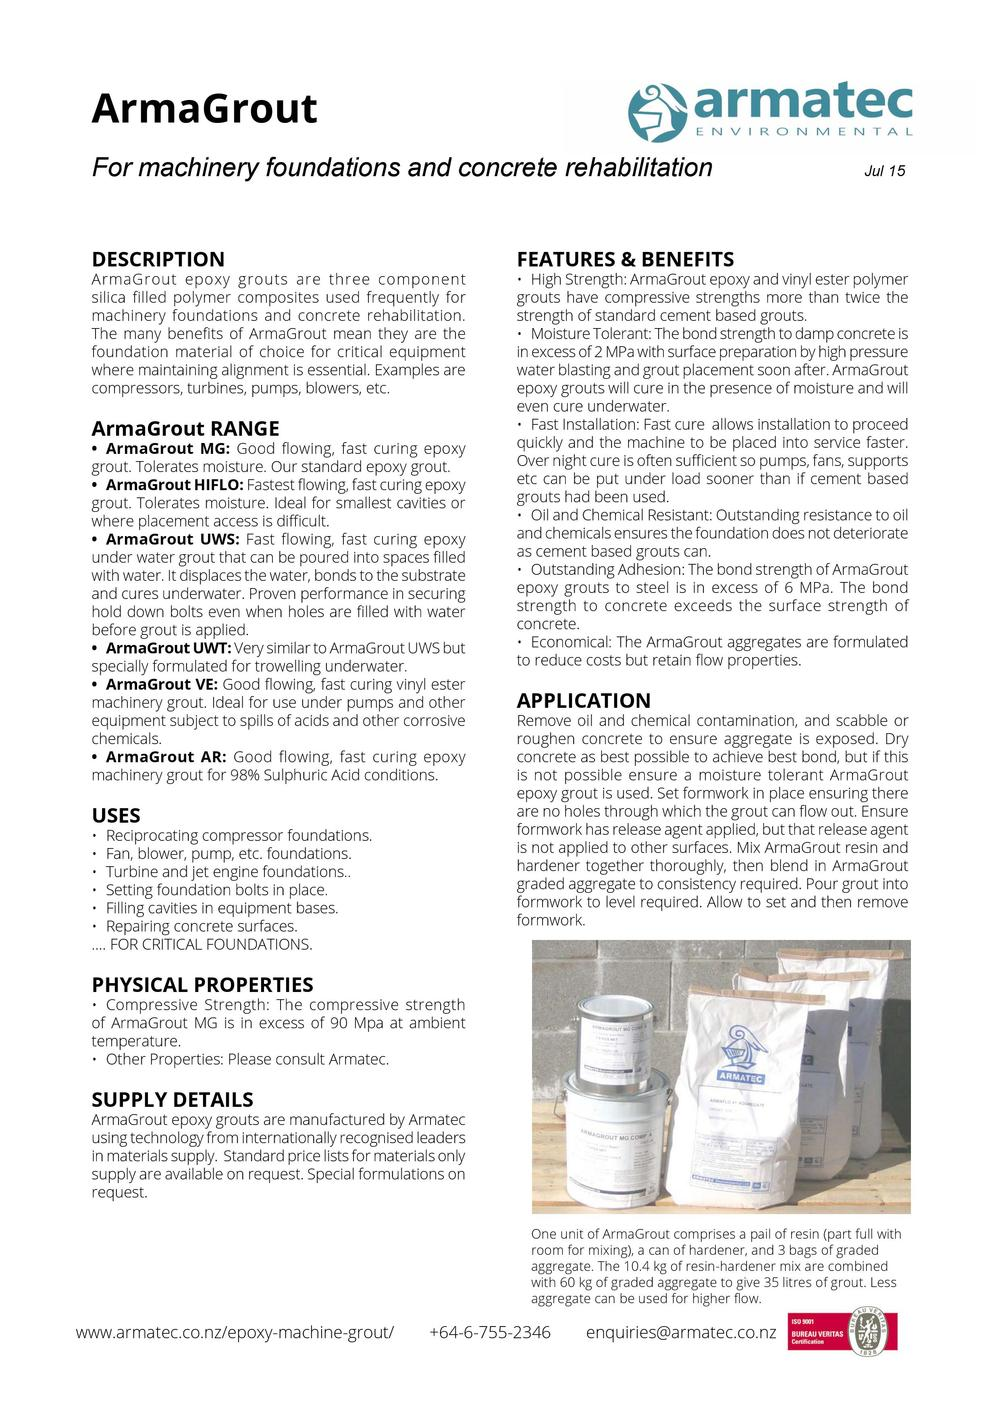 Download the Epoxy Machine Grout Handbook